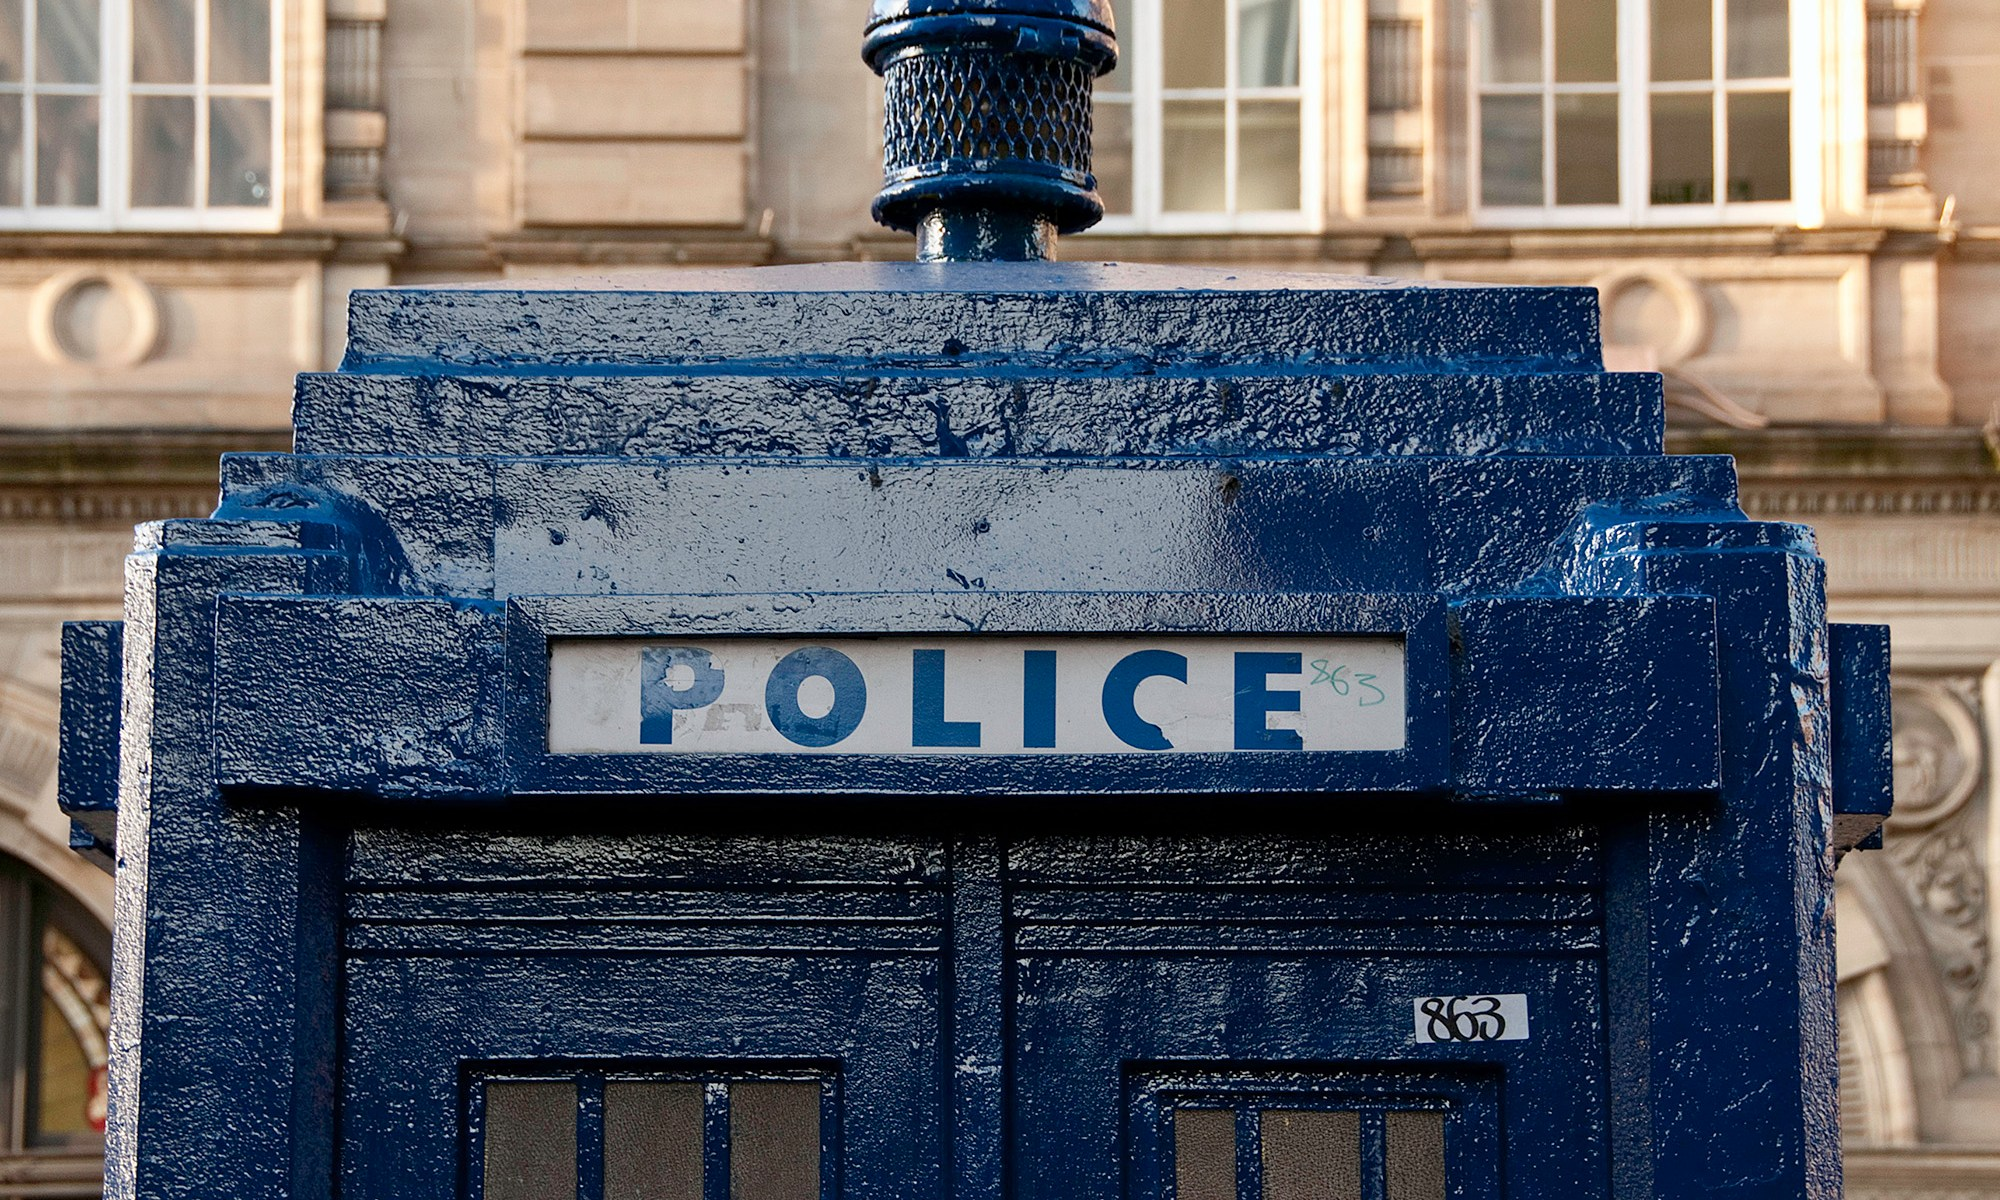 Police Telephone Box Scotland